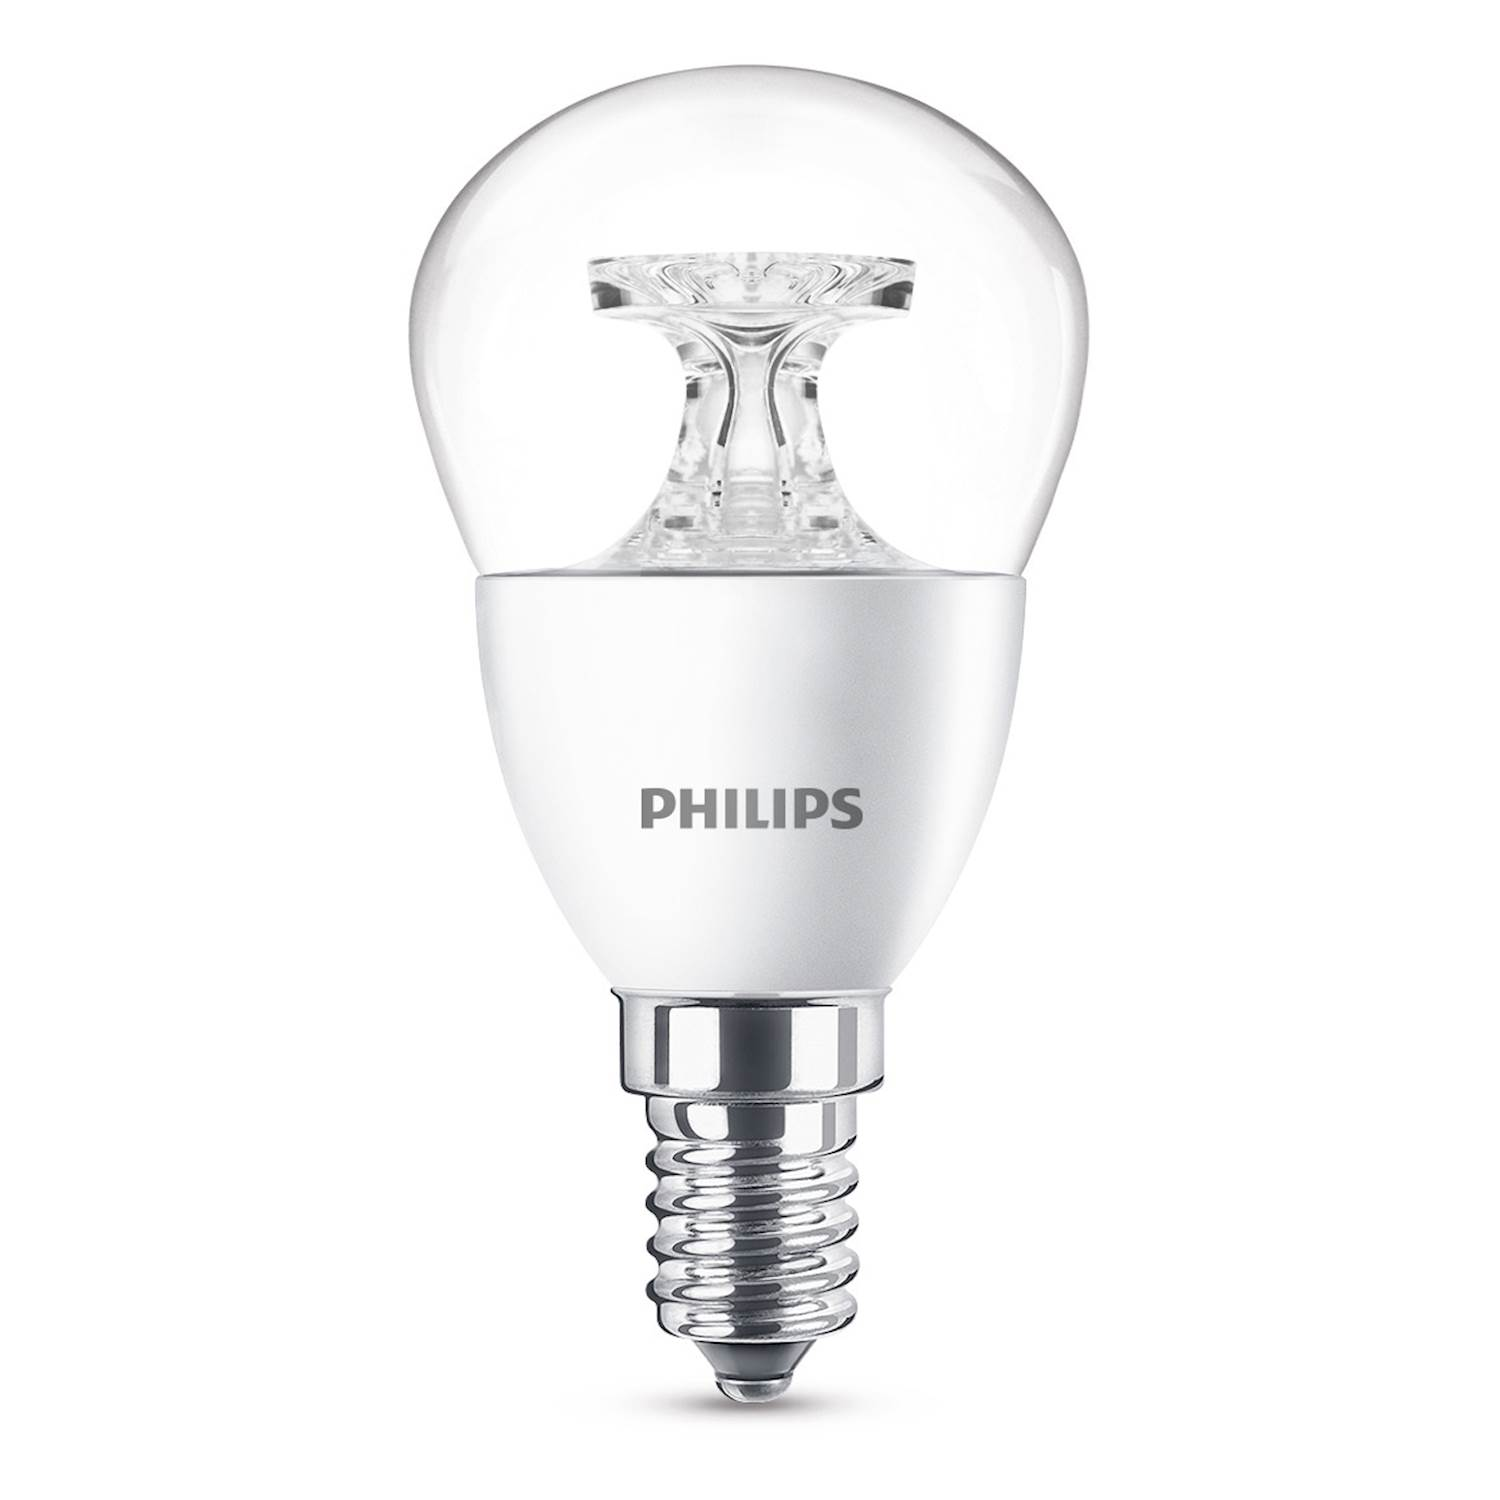 Philips LED KLOT 4W E14 VV KL ND